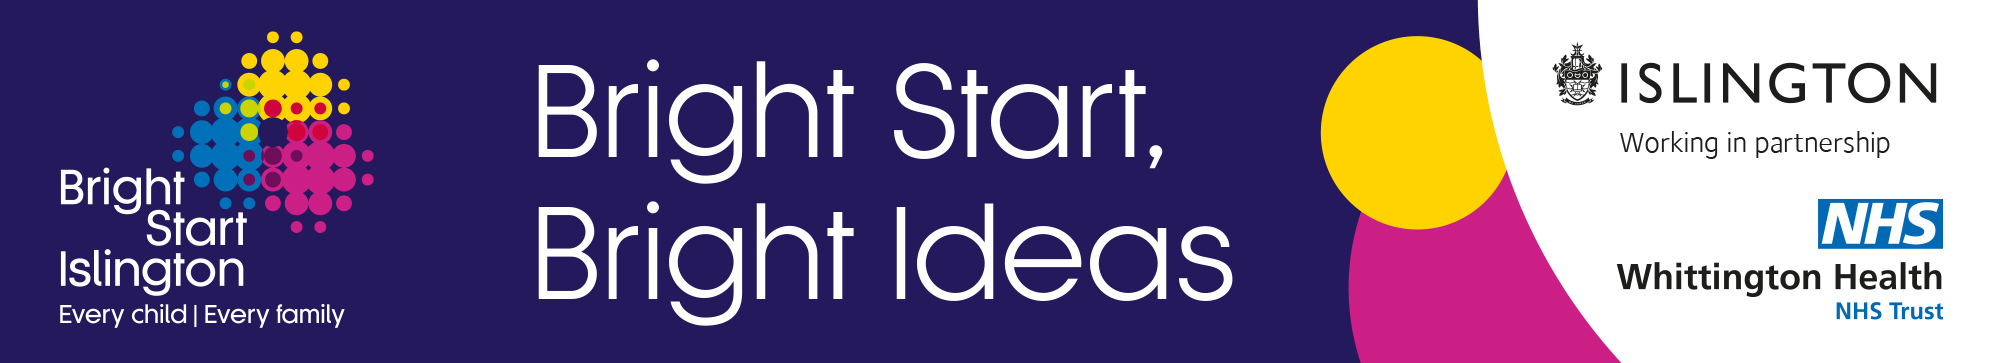 Subscribe to Bright Start, Bright Ideas